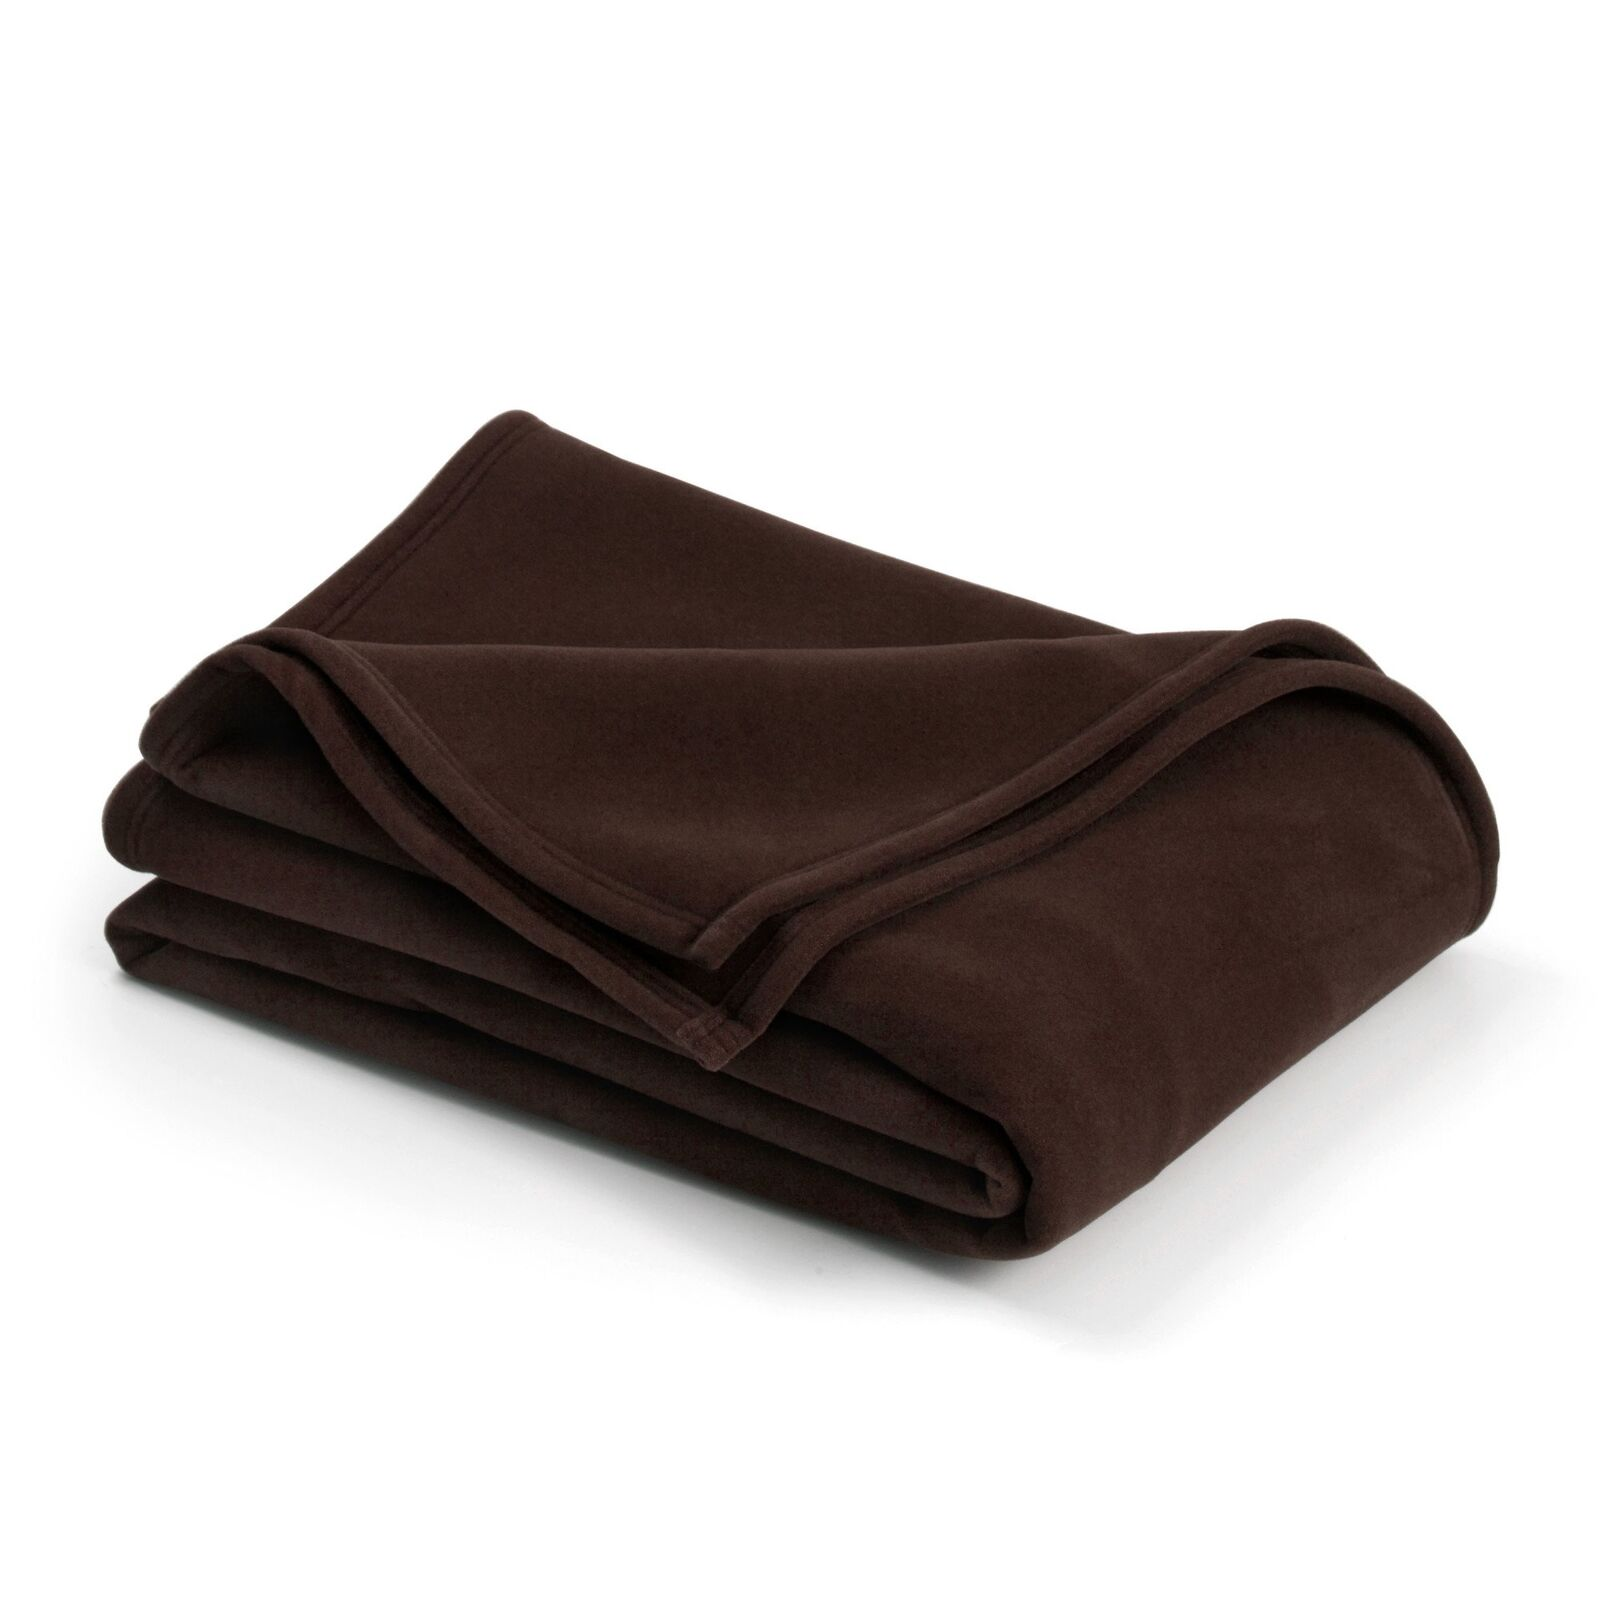 The Original Vellux Blanket - King, Soft, Warm, Insulated, Pet-Friendly, Home